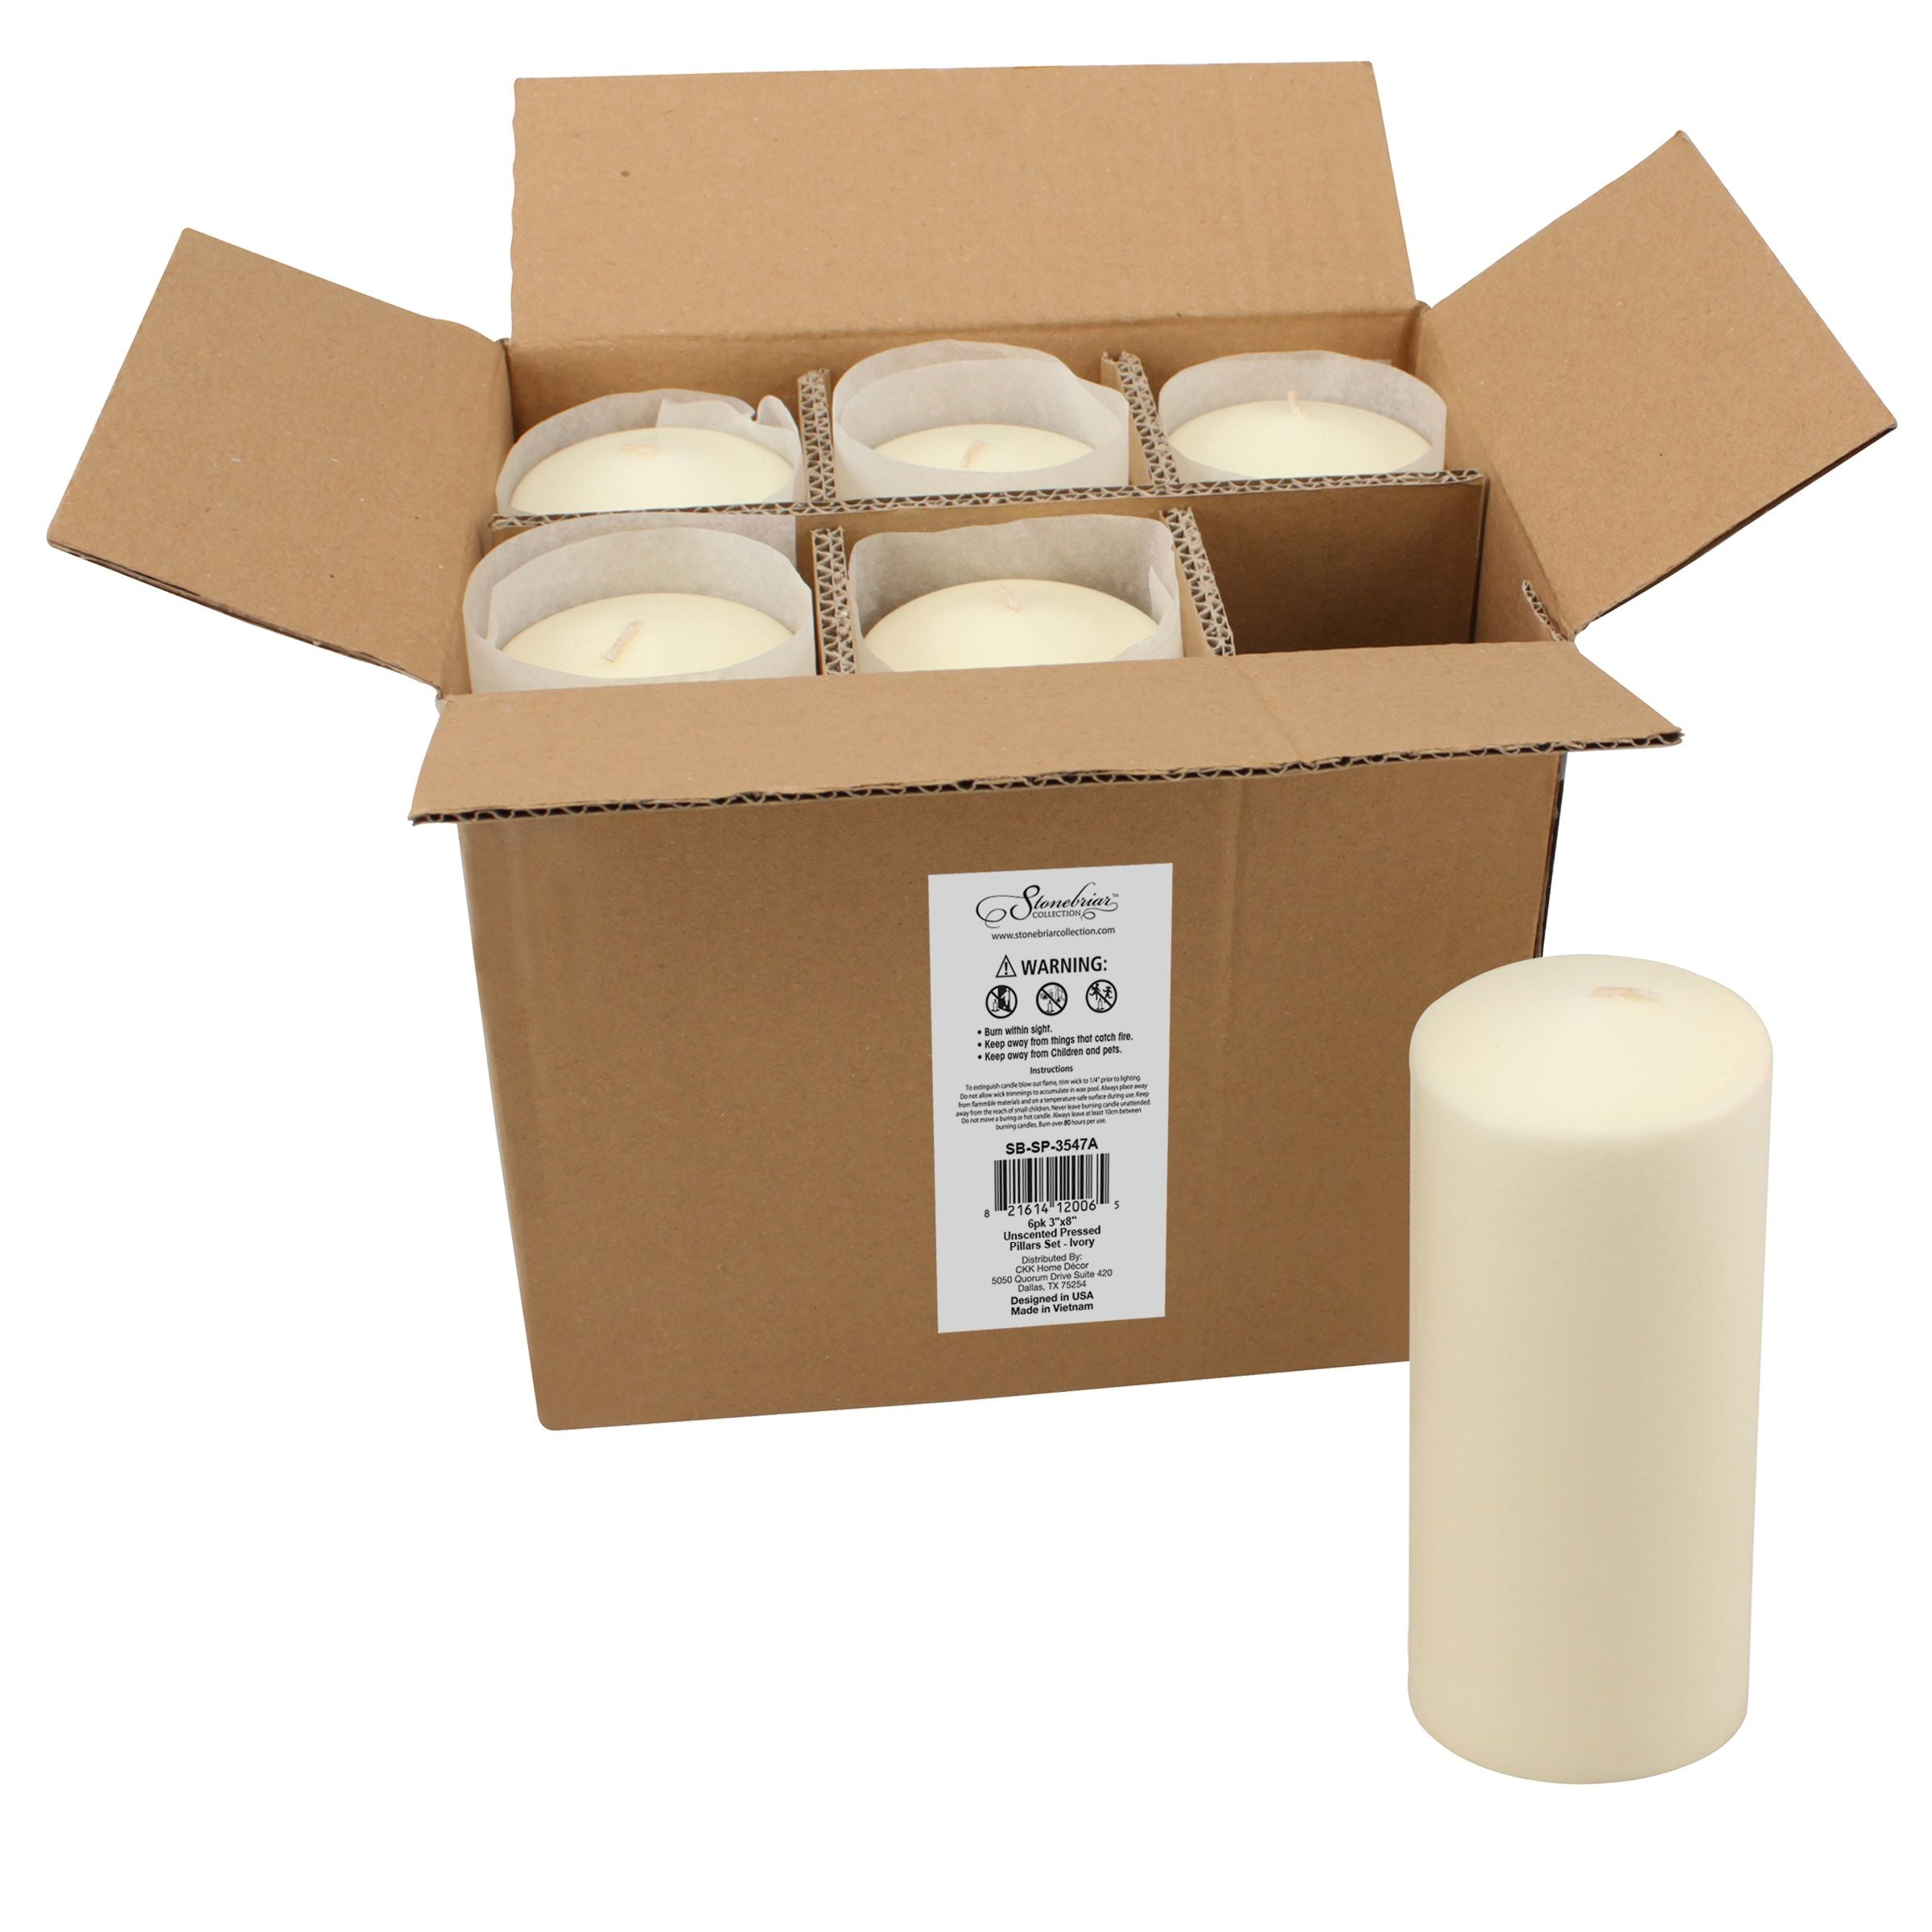 3 x 8 Unscented Ivory Pillar Candles, Set of 6